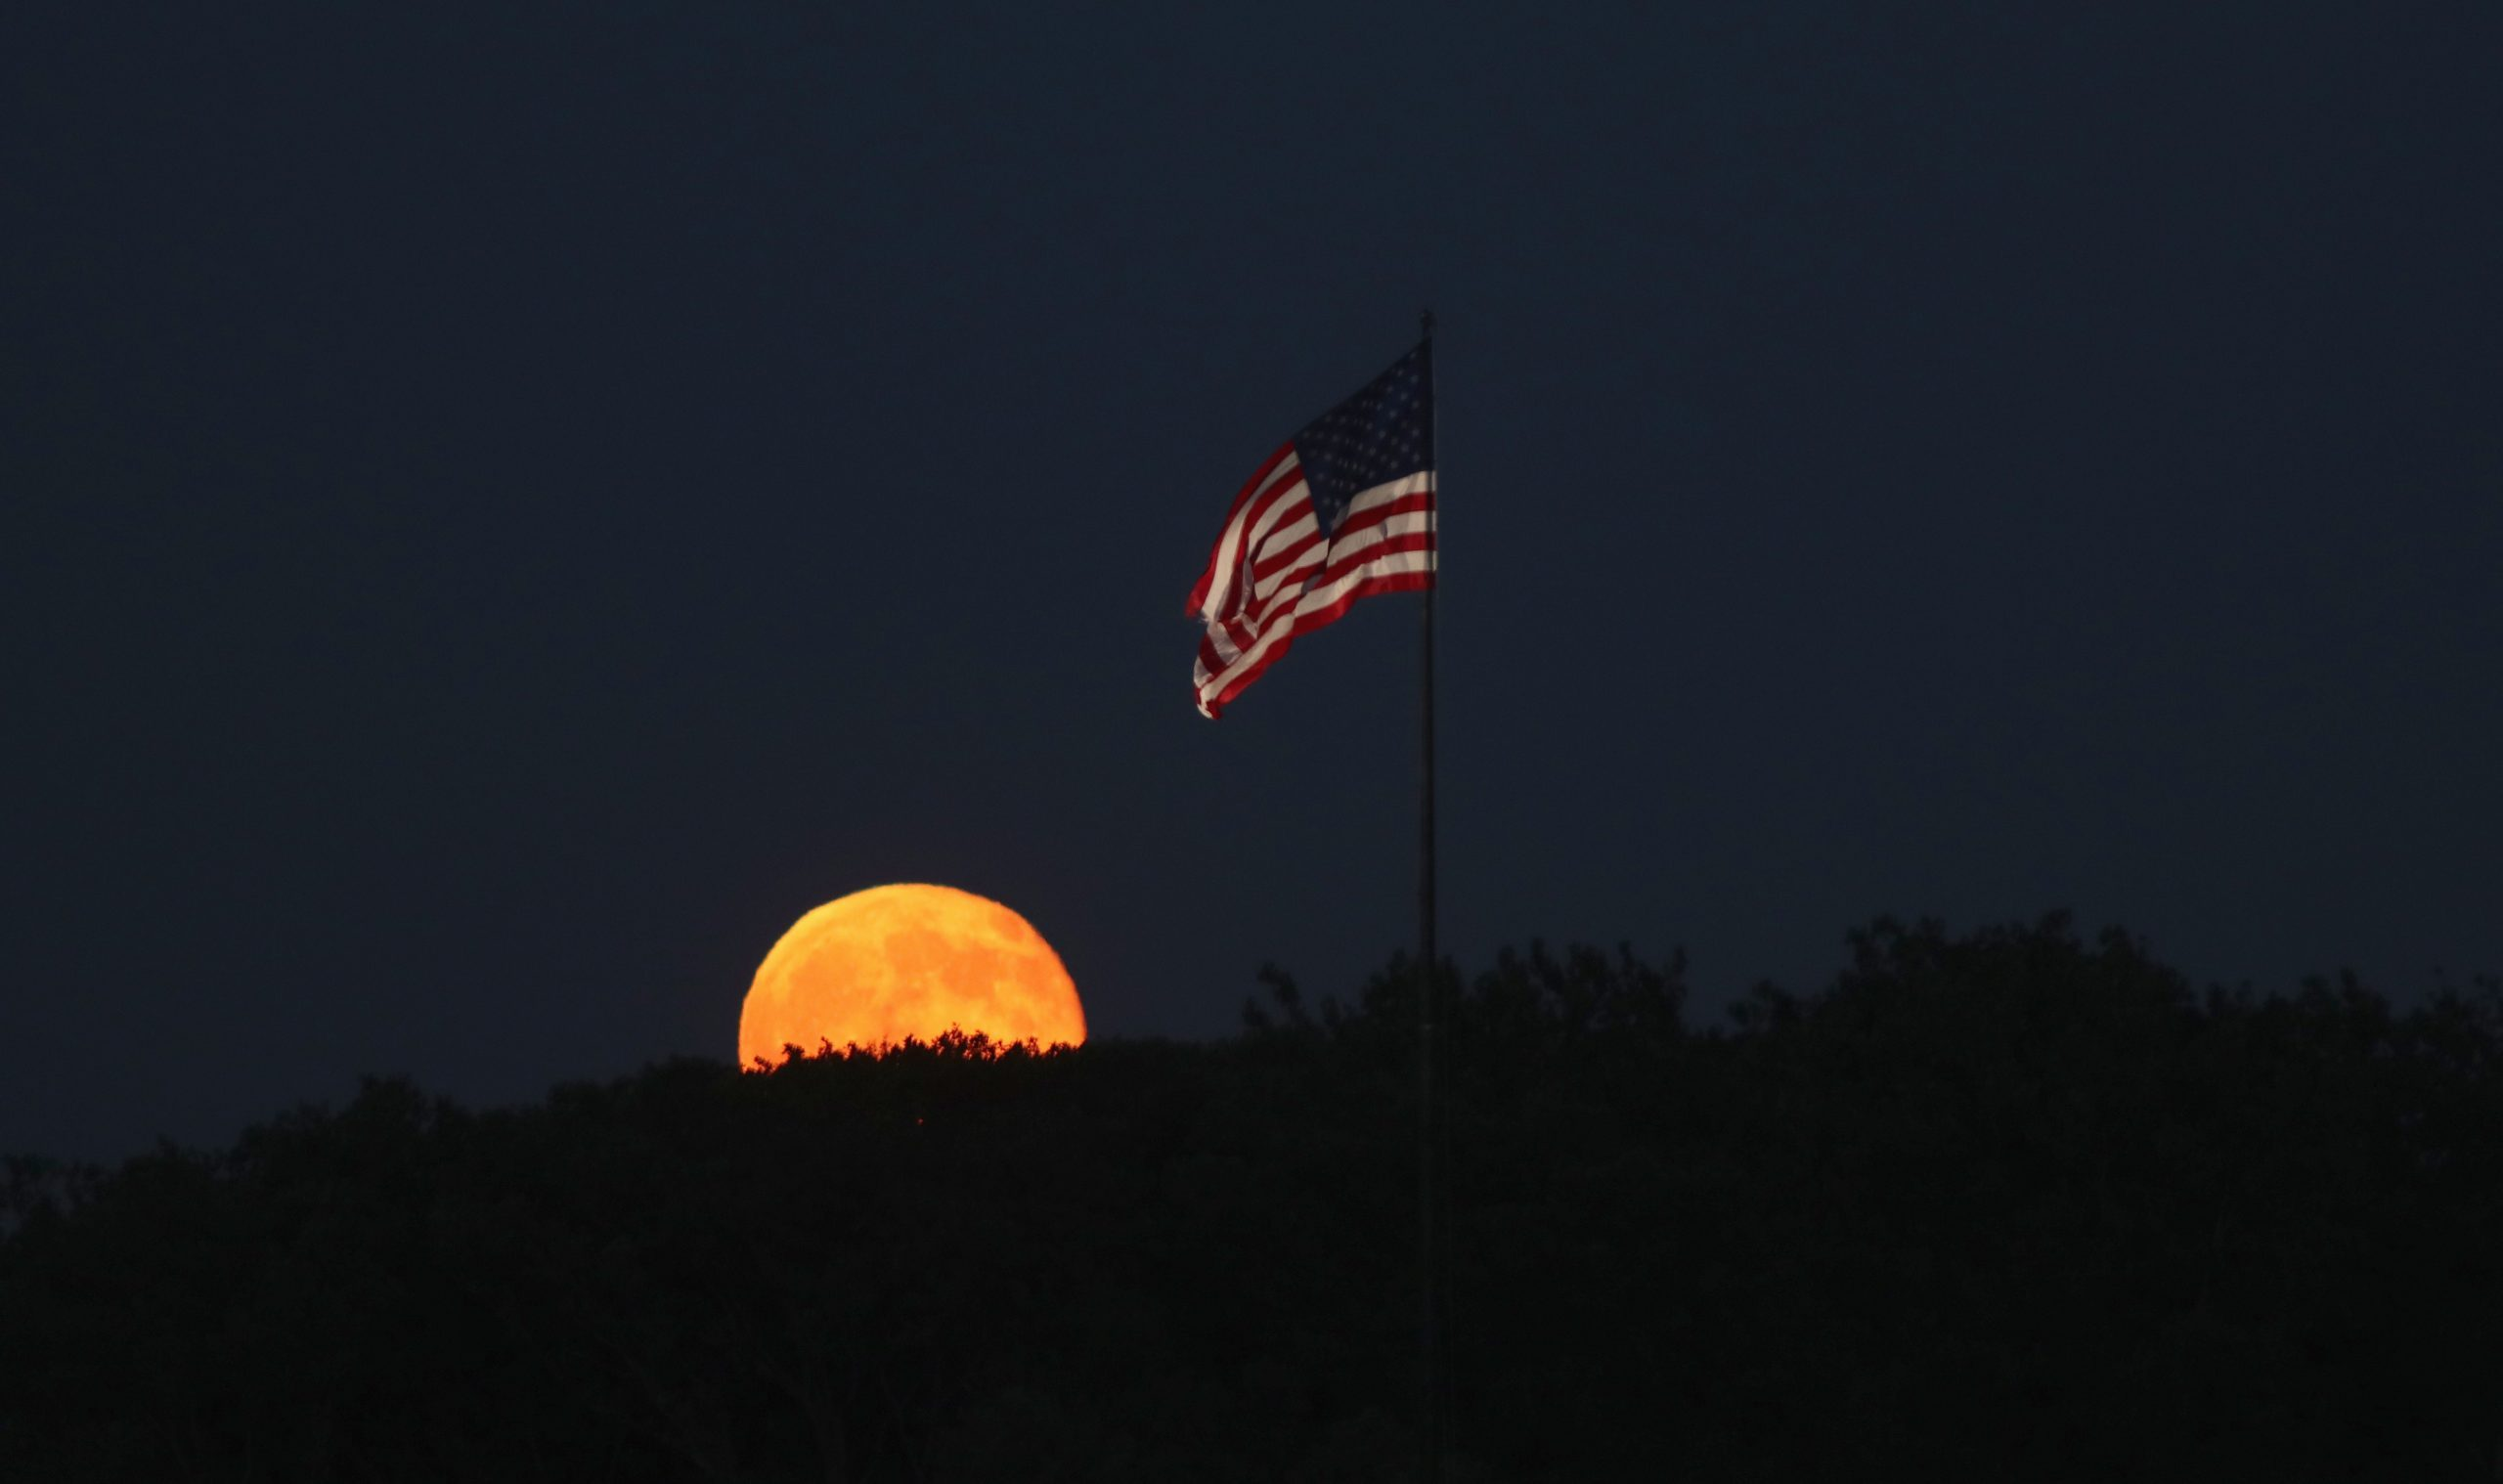 The moon rises behind a flag on Liberty Island in New York City on July 9, 2017 as seen from Jersey City, New Jersey.